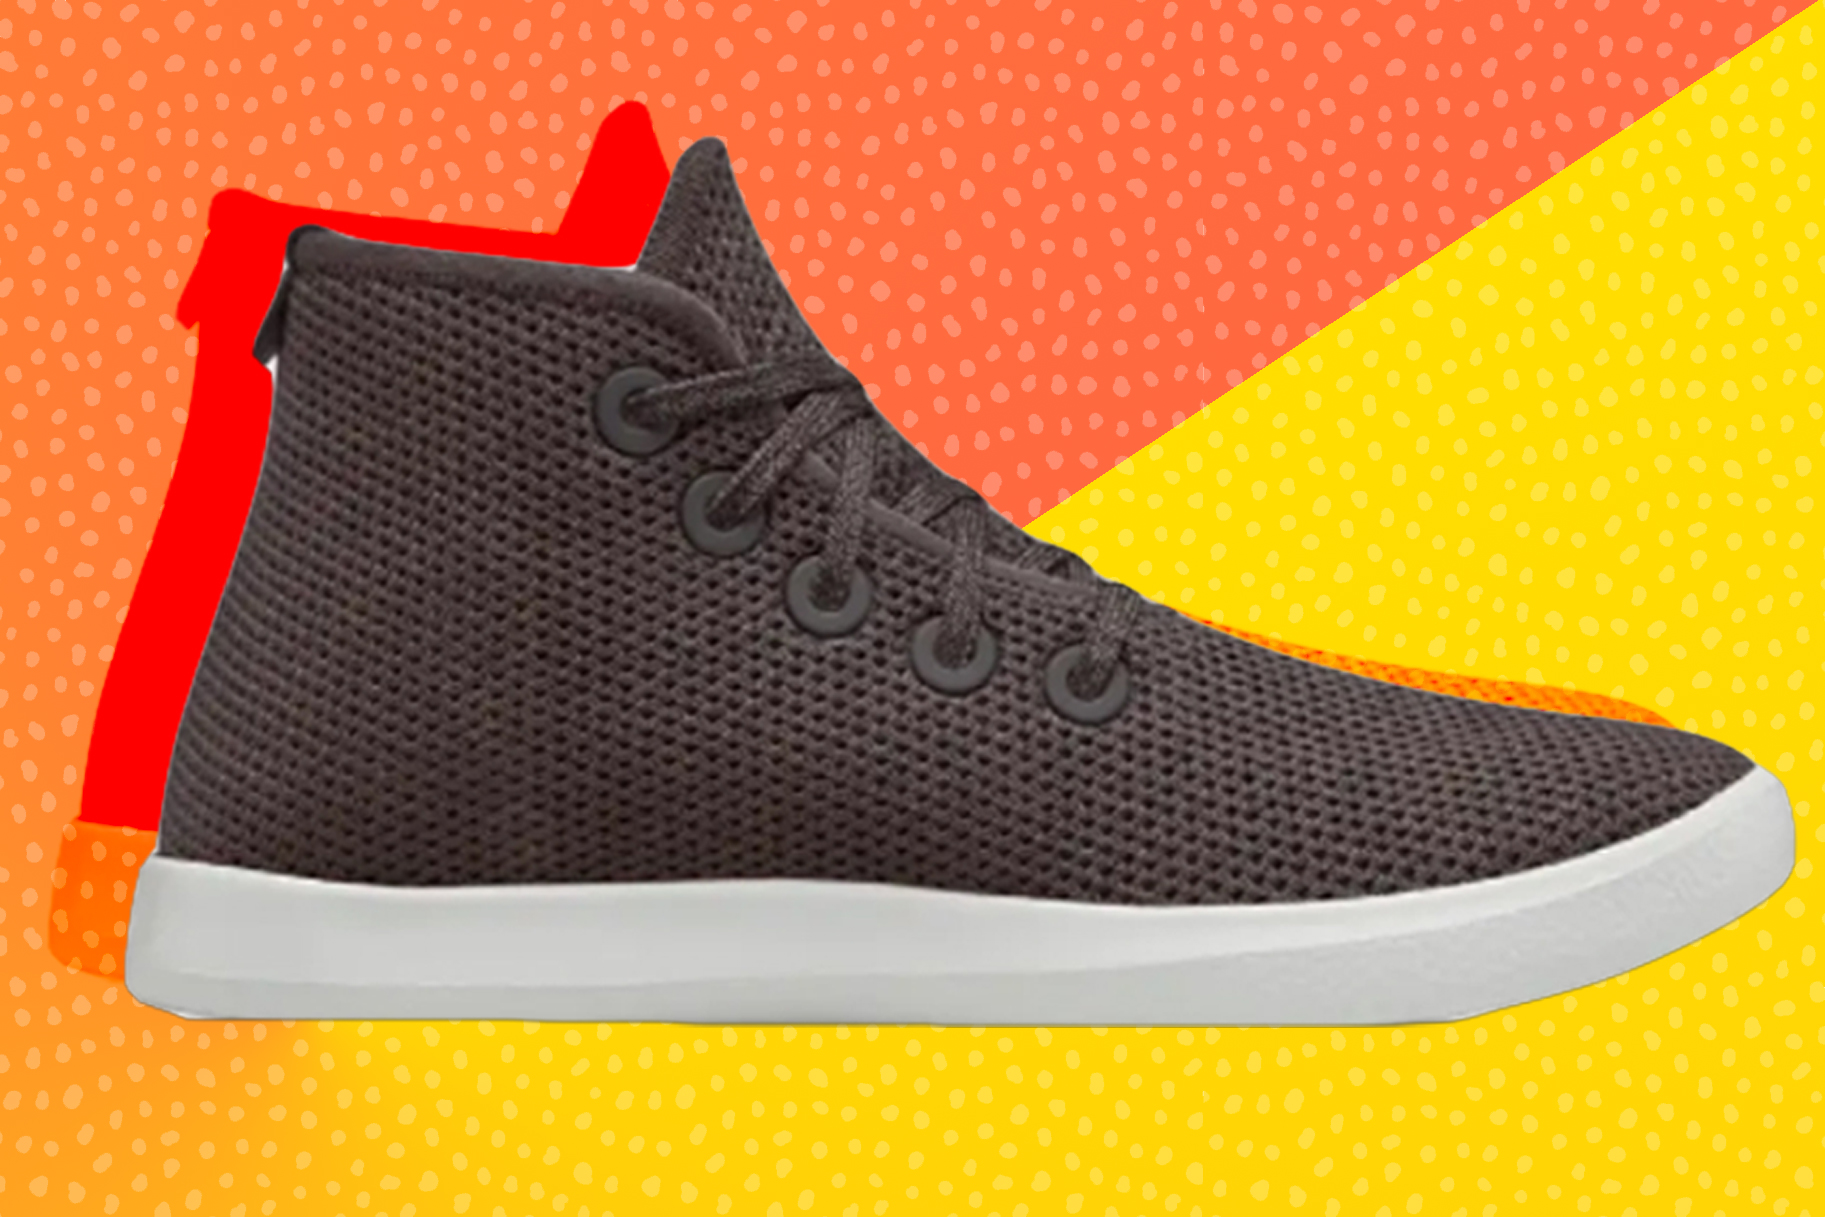 Allbirds Launches New Tree Top High Top